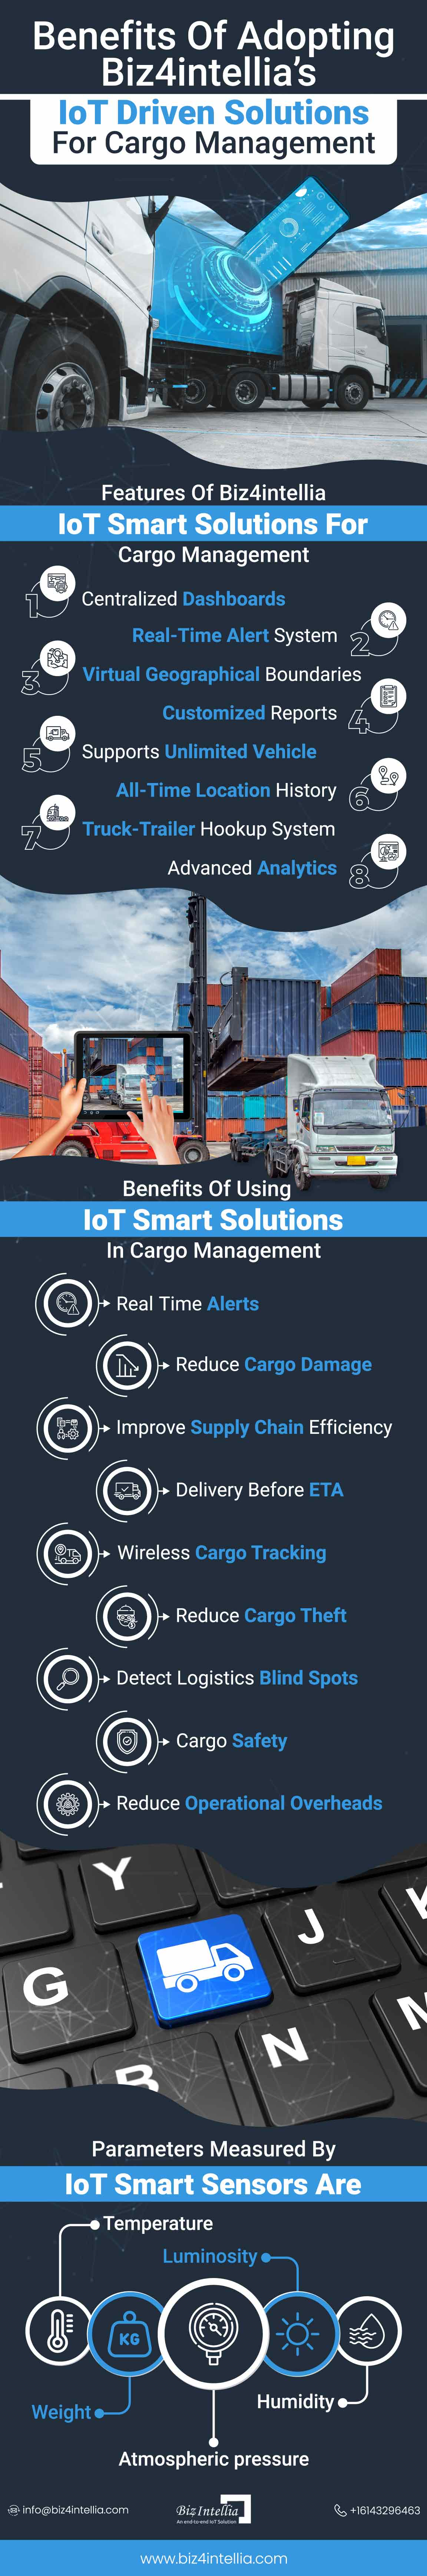 benefits-of-adopting-biz4intellias-iot-driven-solutions-for-cargo-management